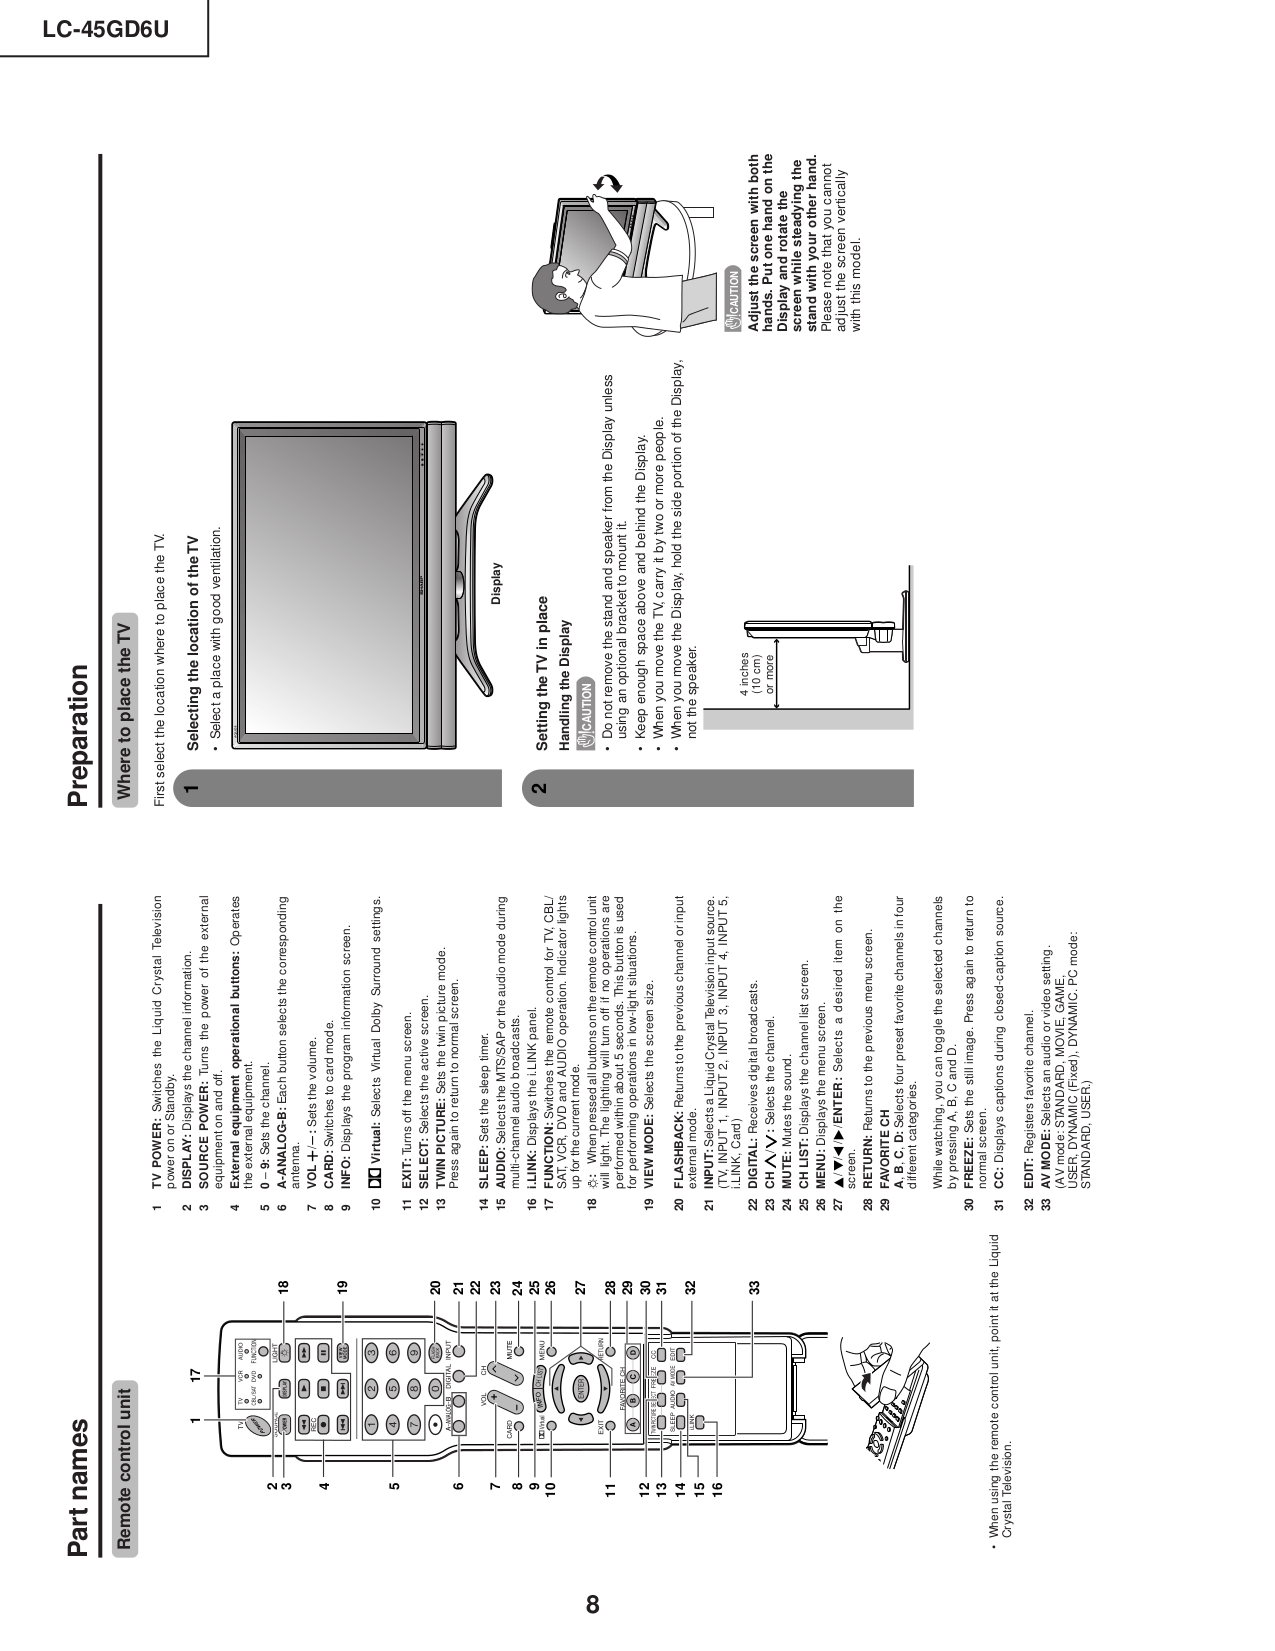 PDF manual for Sharp TV AQUOS LC-45GD6U